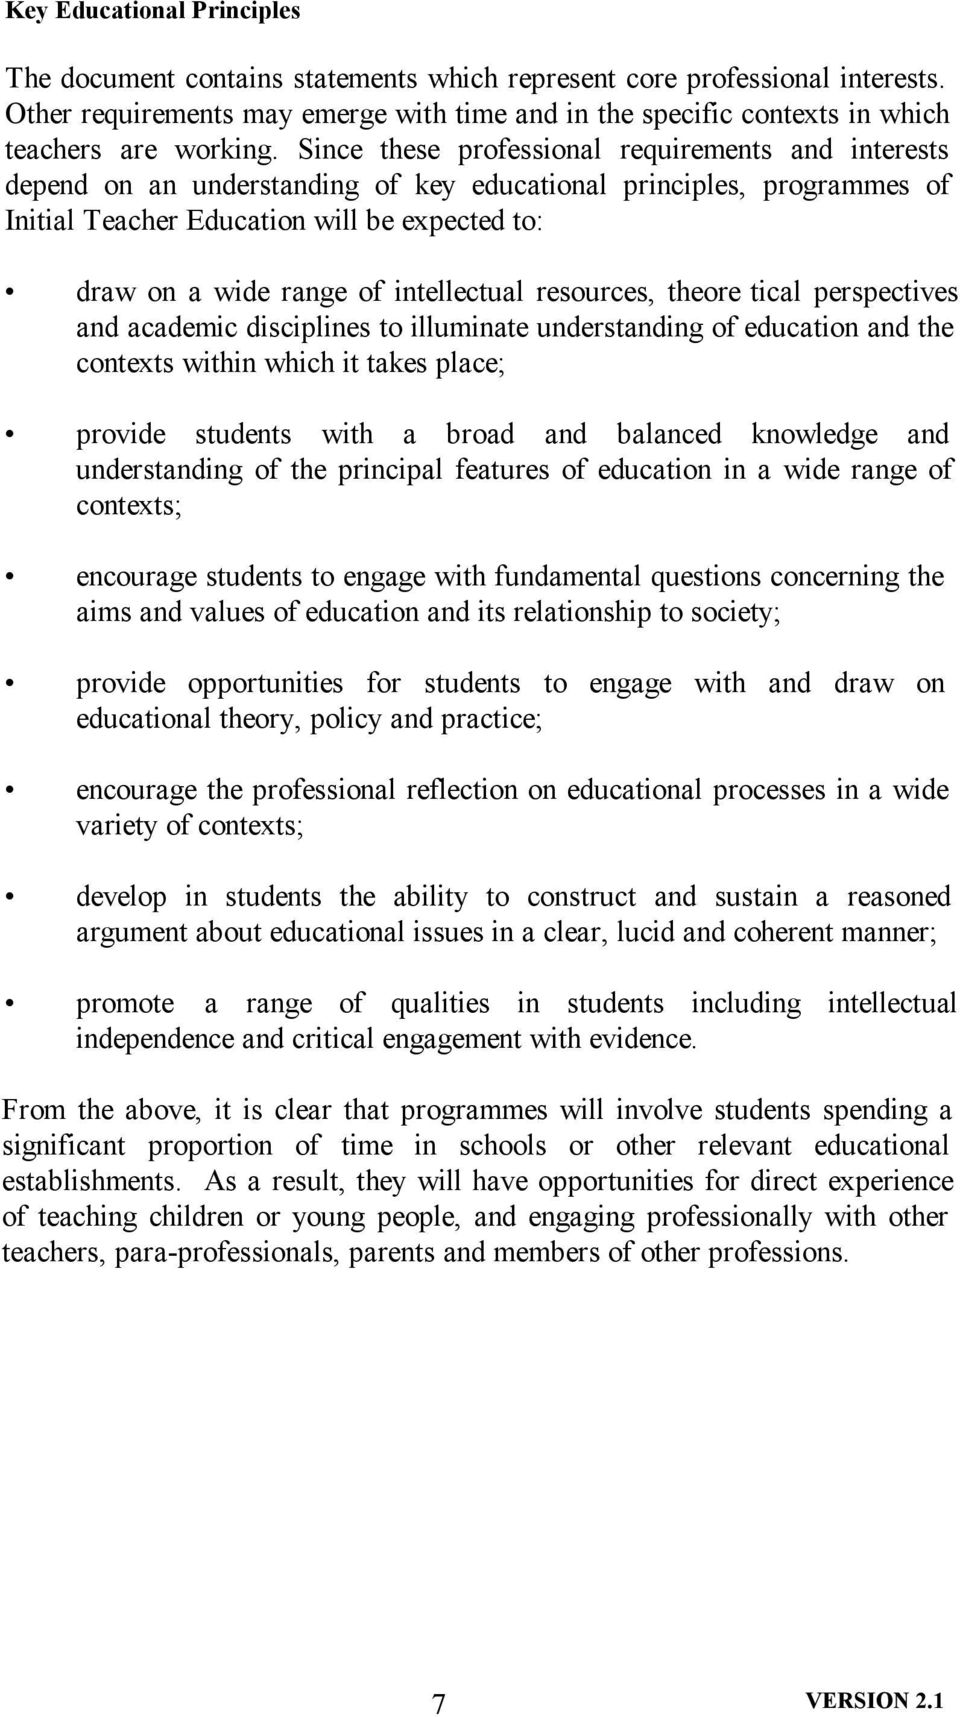 Since these professional requirements and interests depend on an understanding of key educational principles, programmes of Initial Teacher Education will be expected to: draw on a wide range of